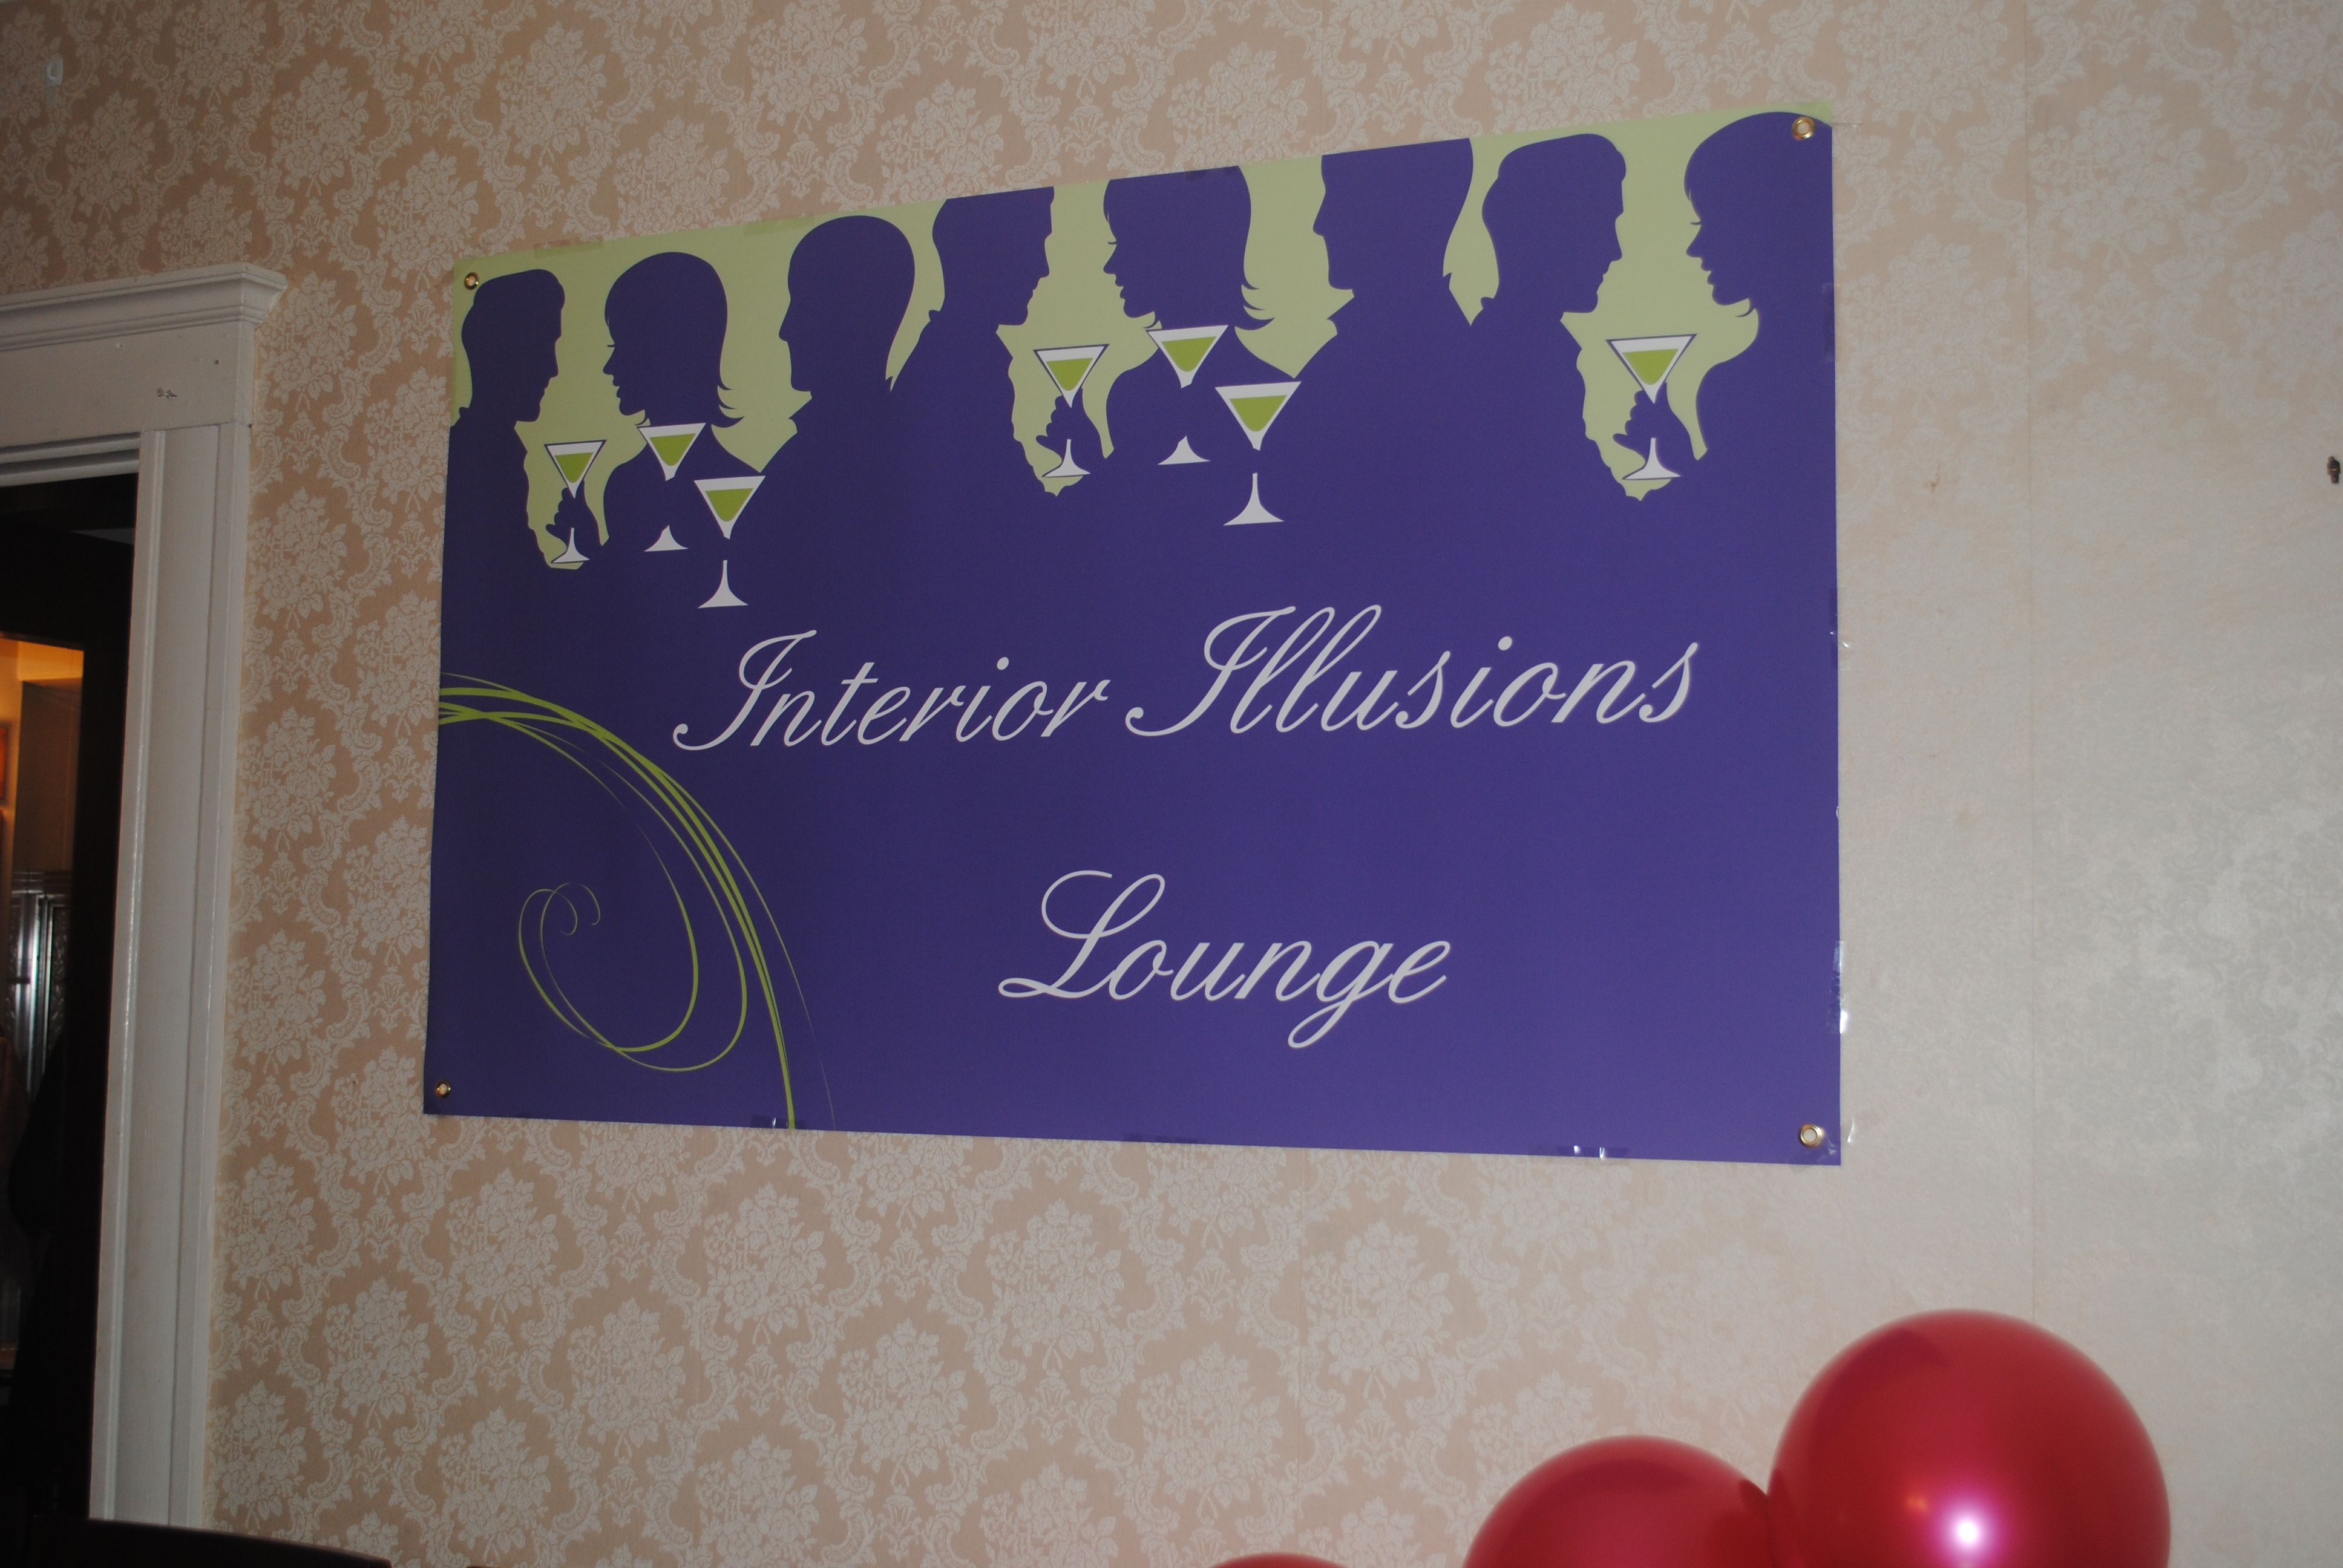 Interior Illusions Lounge poster. Each room at the party had a Rupaul themed name. Created at